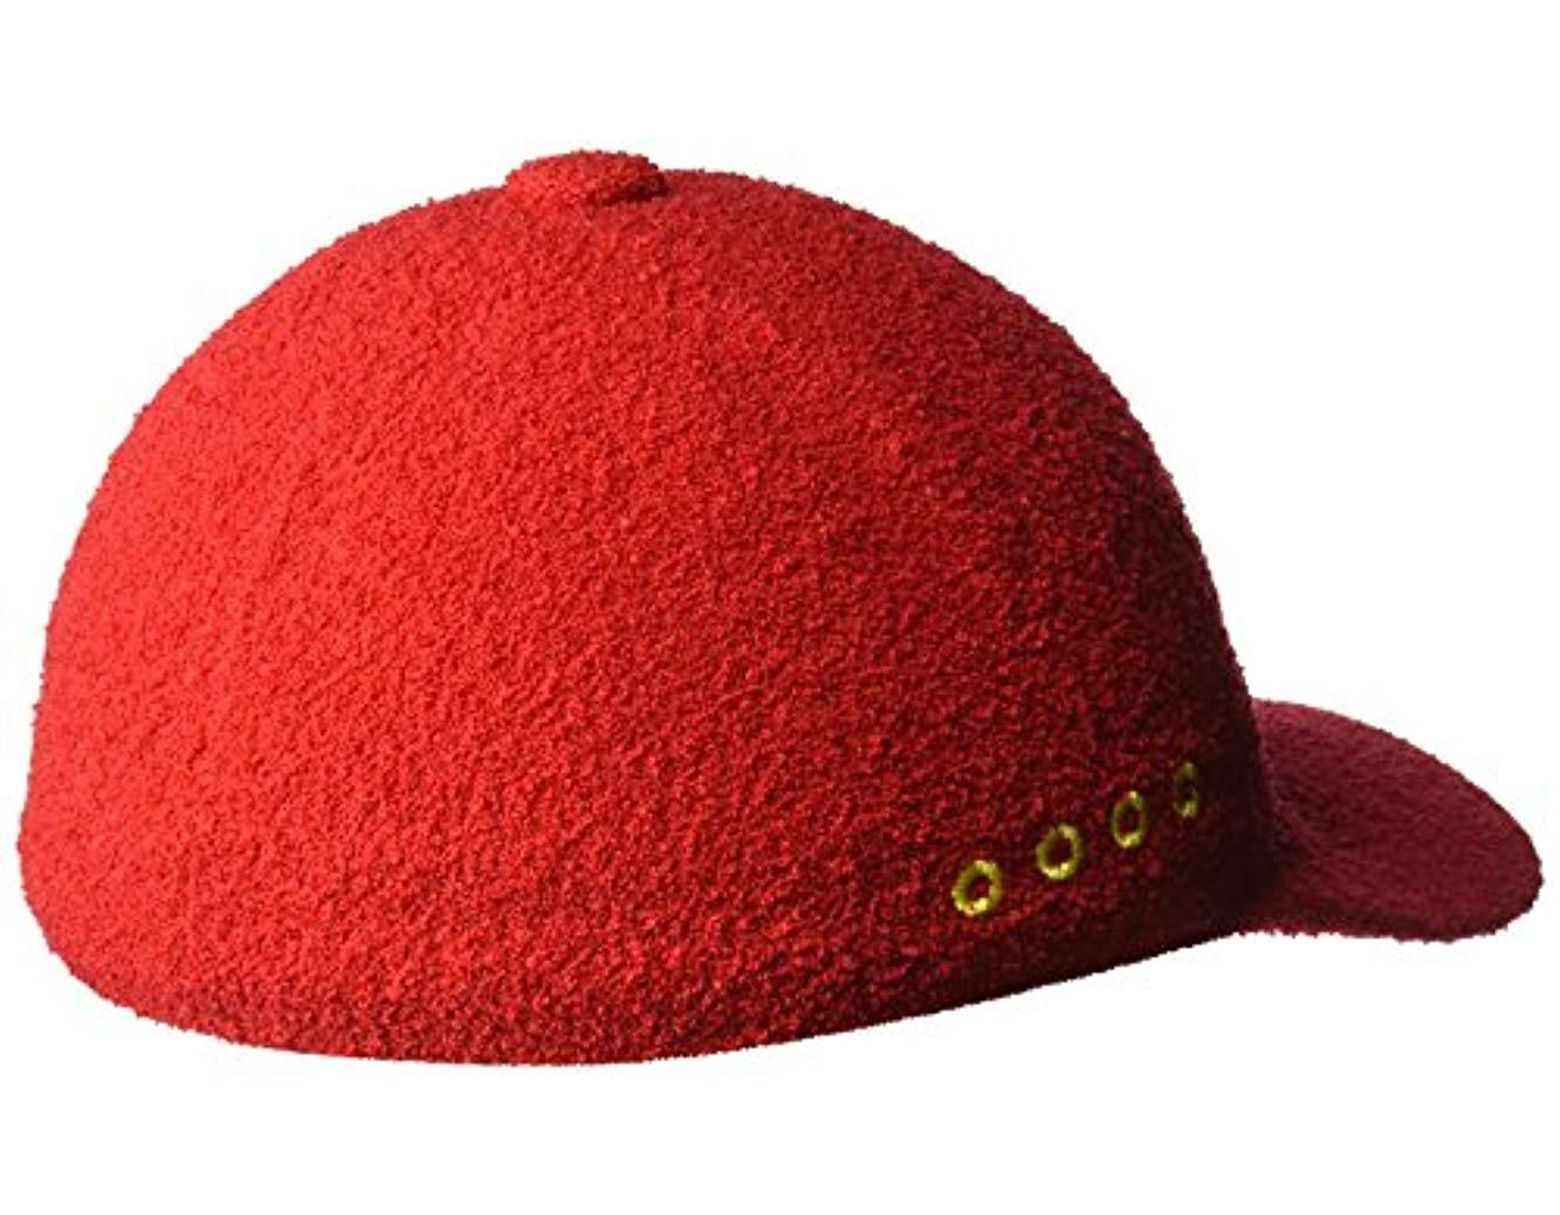 8da44a8395440b Kangol Ufo Spacecap Baseball Cap in Red for Men - Save 35% - Lyst